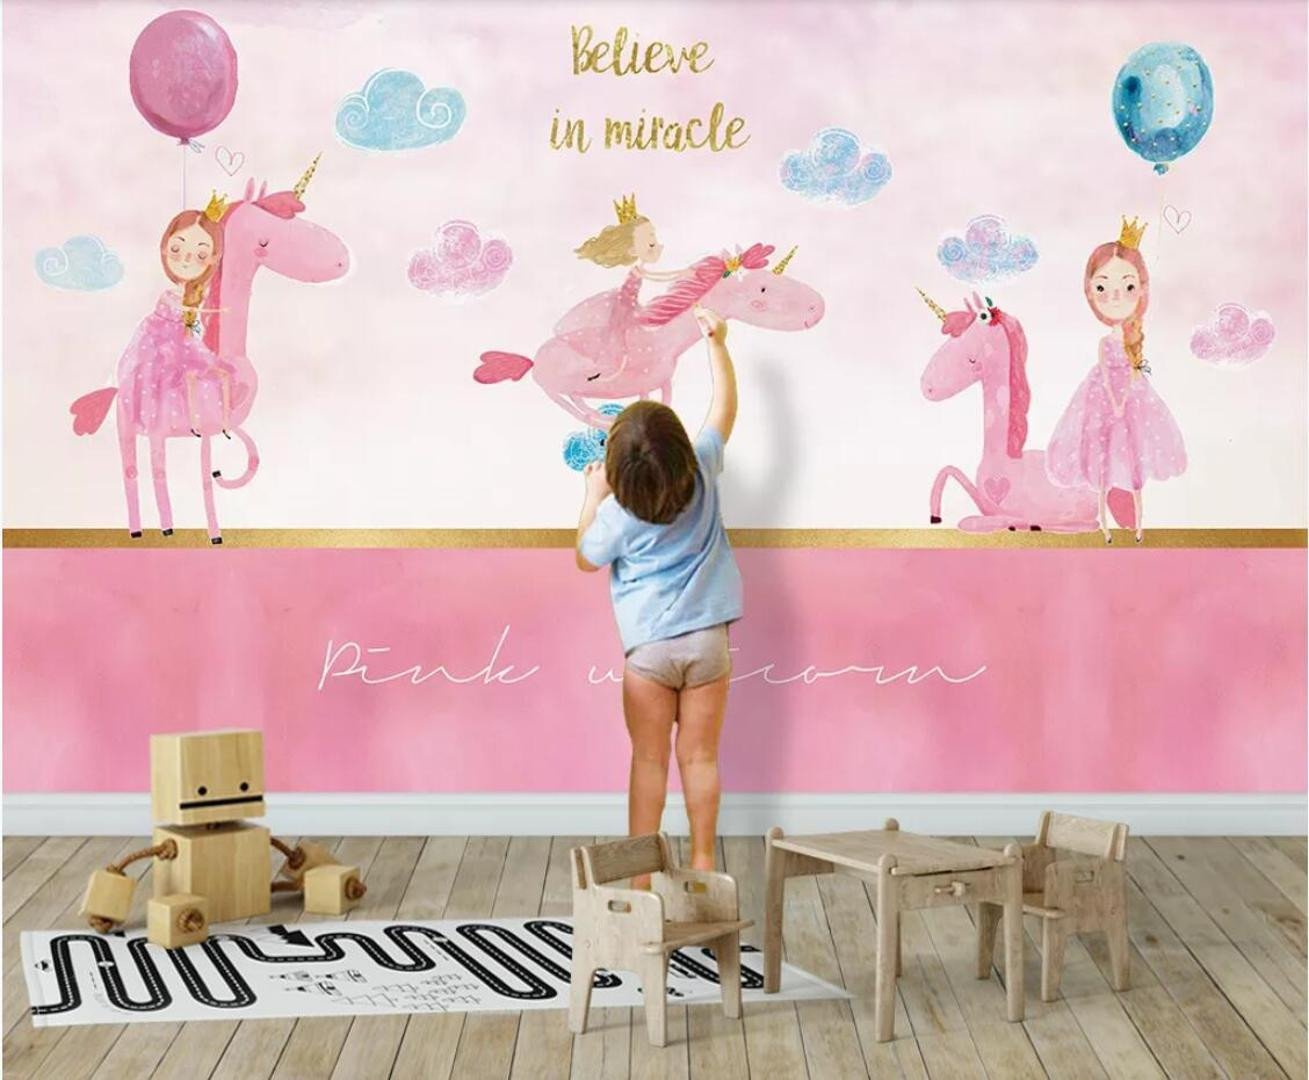 Wallpapers for Girls Bedroom Awesome Kids Bedroom Unicorn Wall Paper Mural for Children Bedroom Canvas Wallpaper 3d Art Wall Painting Home Contact Paper Custom Free Wallpaper Puter